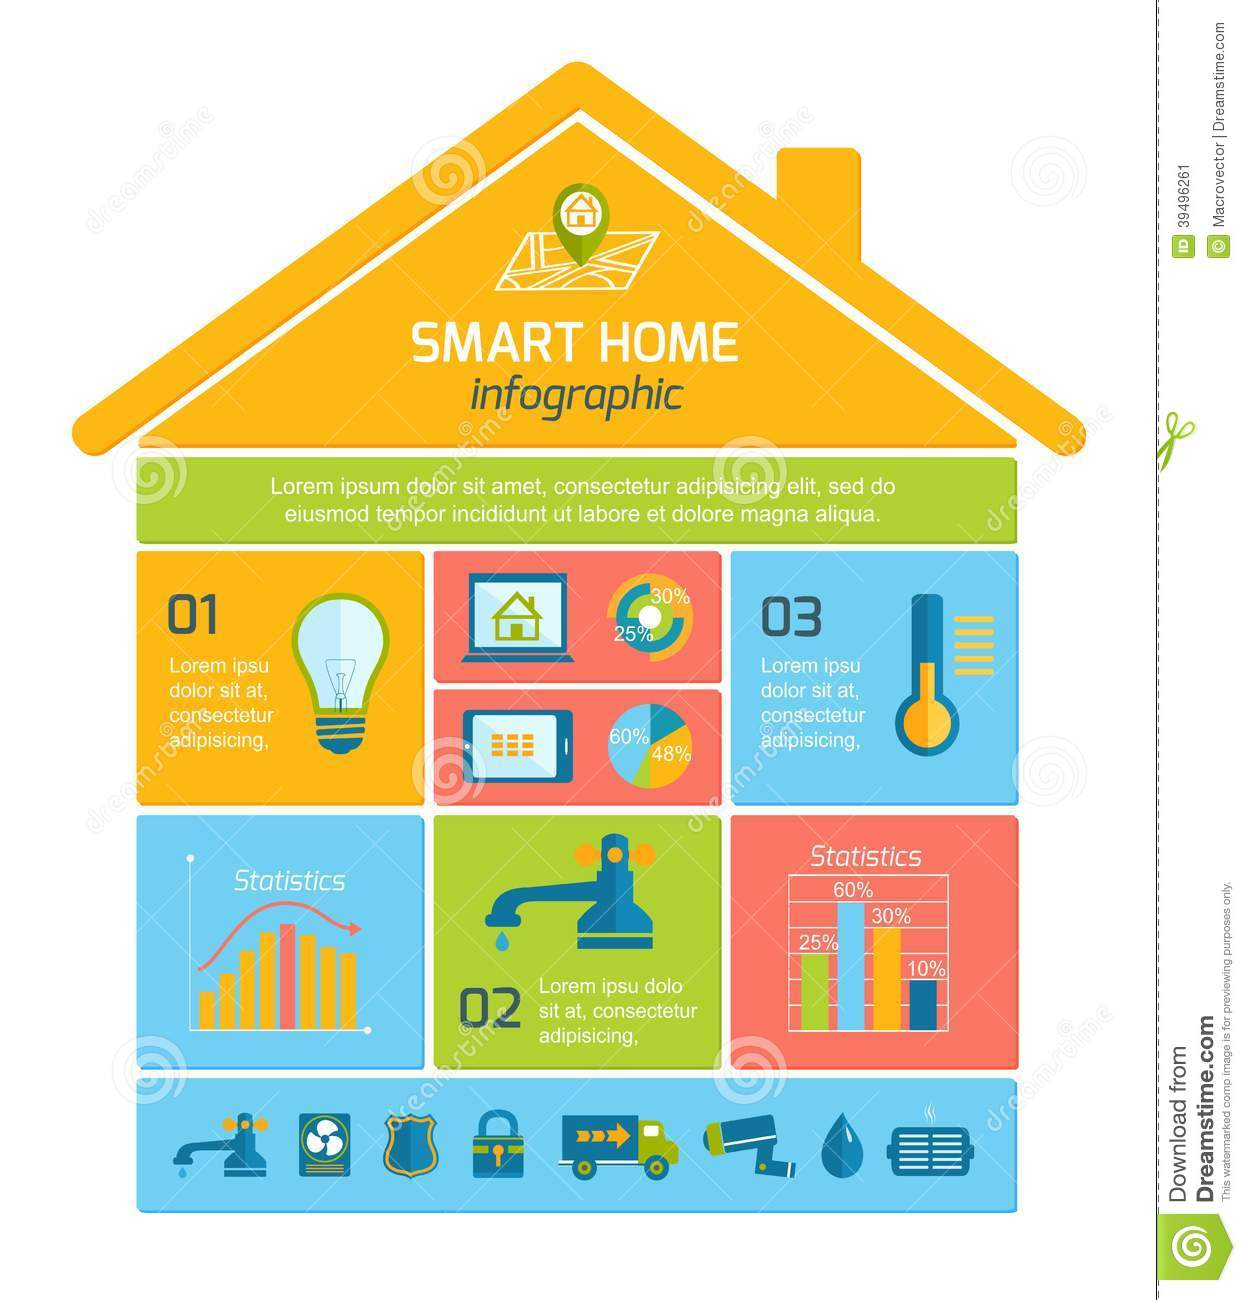 Smart Home Network Design Bkav Smarthome With Singapore